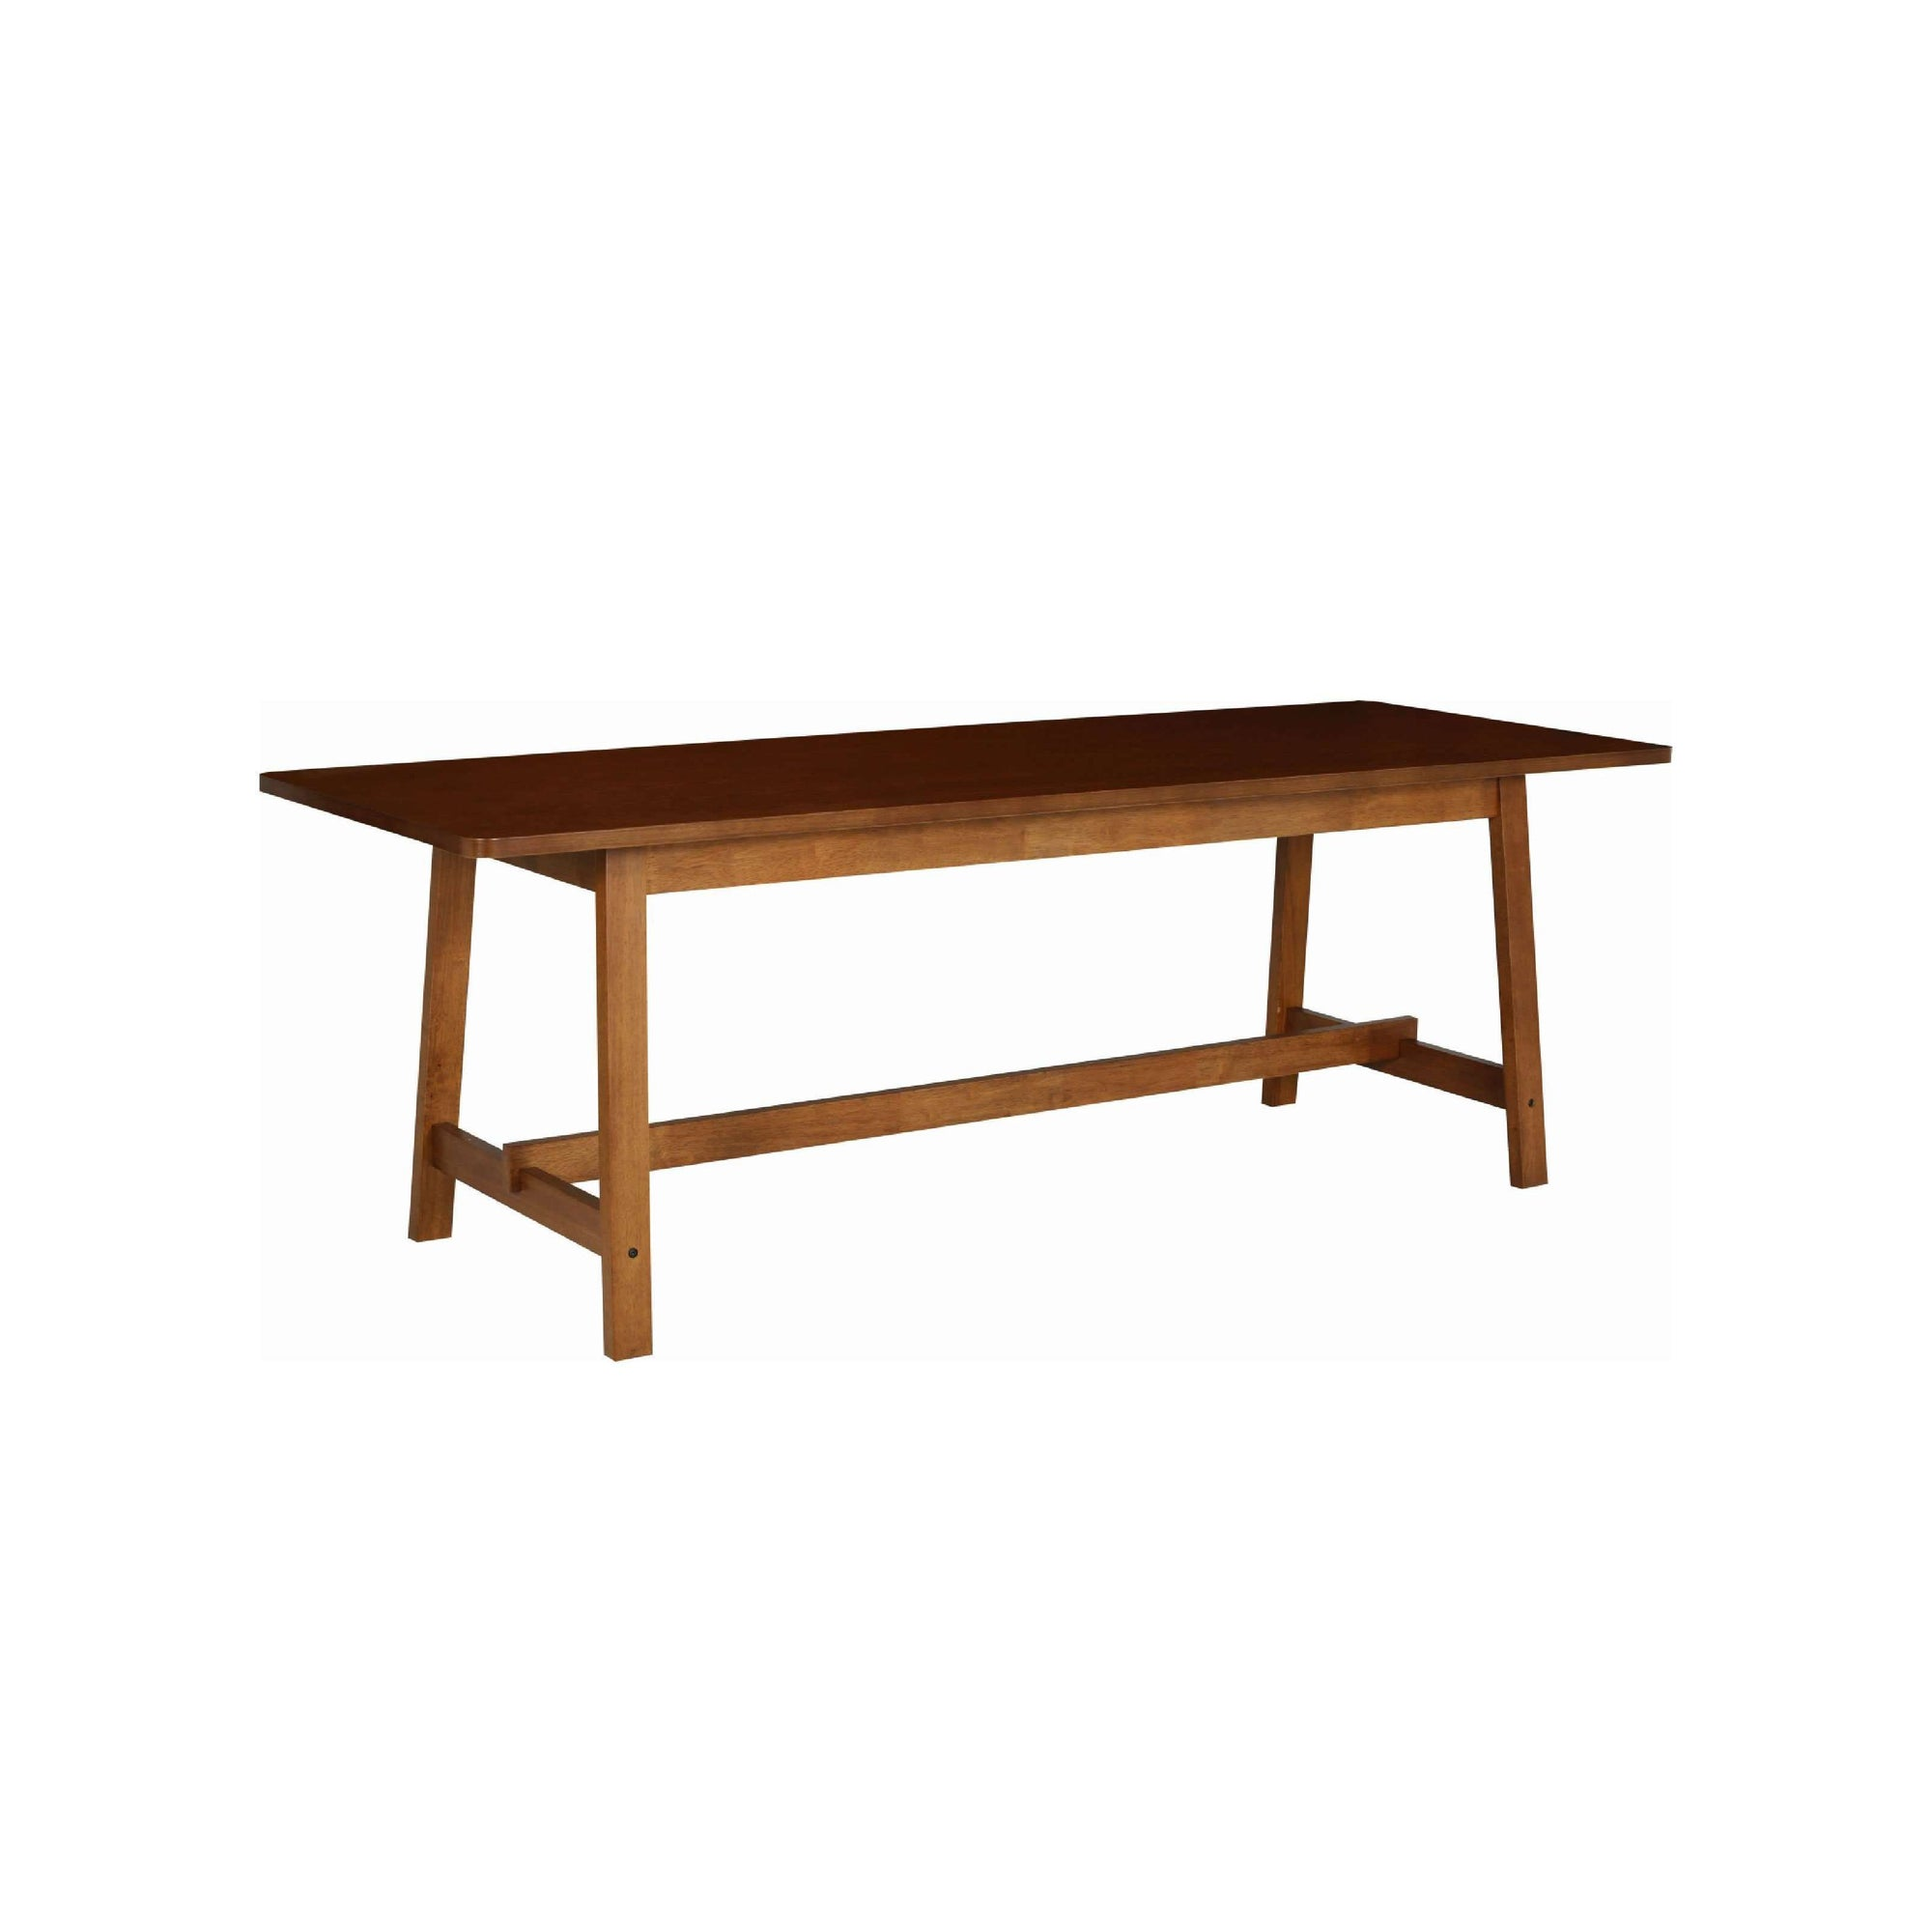 HAYNES 2.2m Dining Table In Cocoa Colour Leg, Walnut Laminate Top